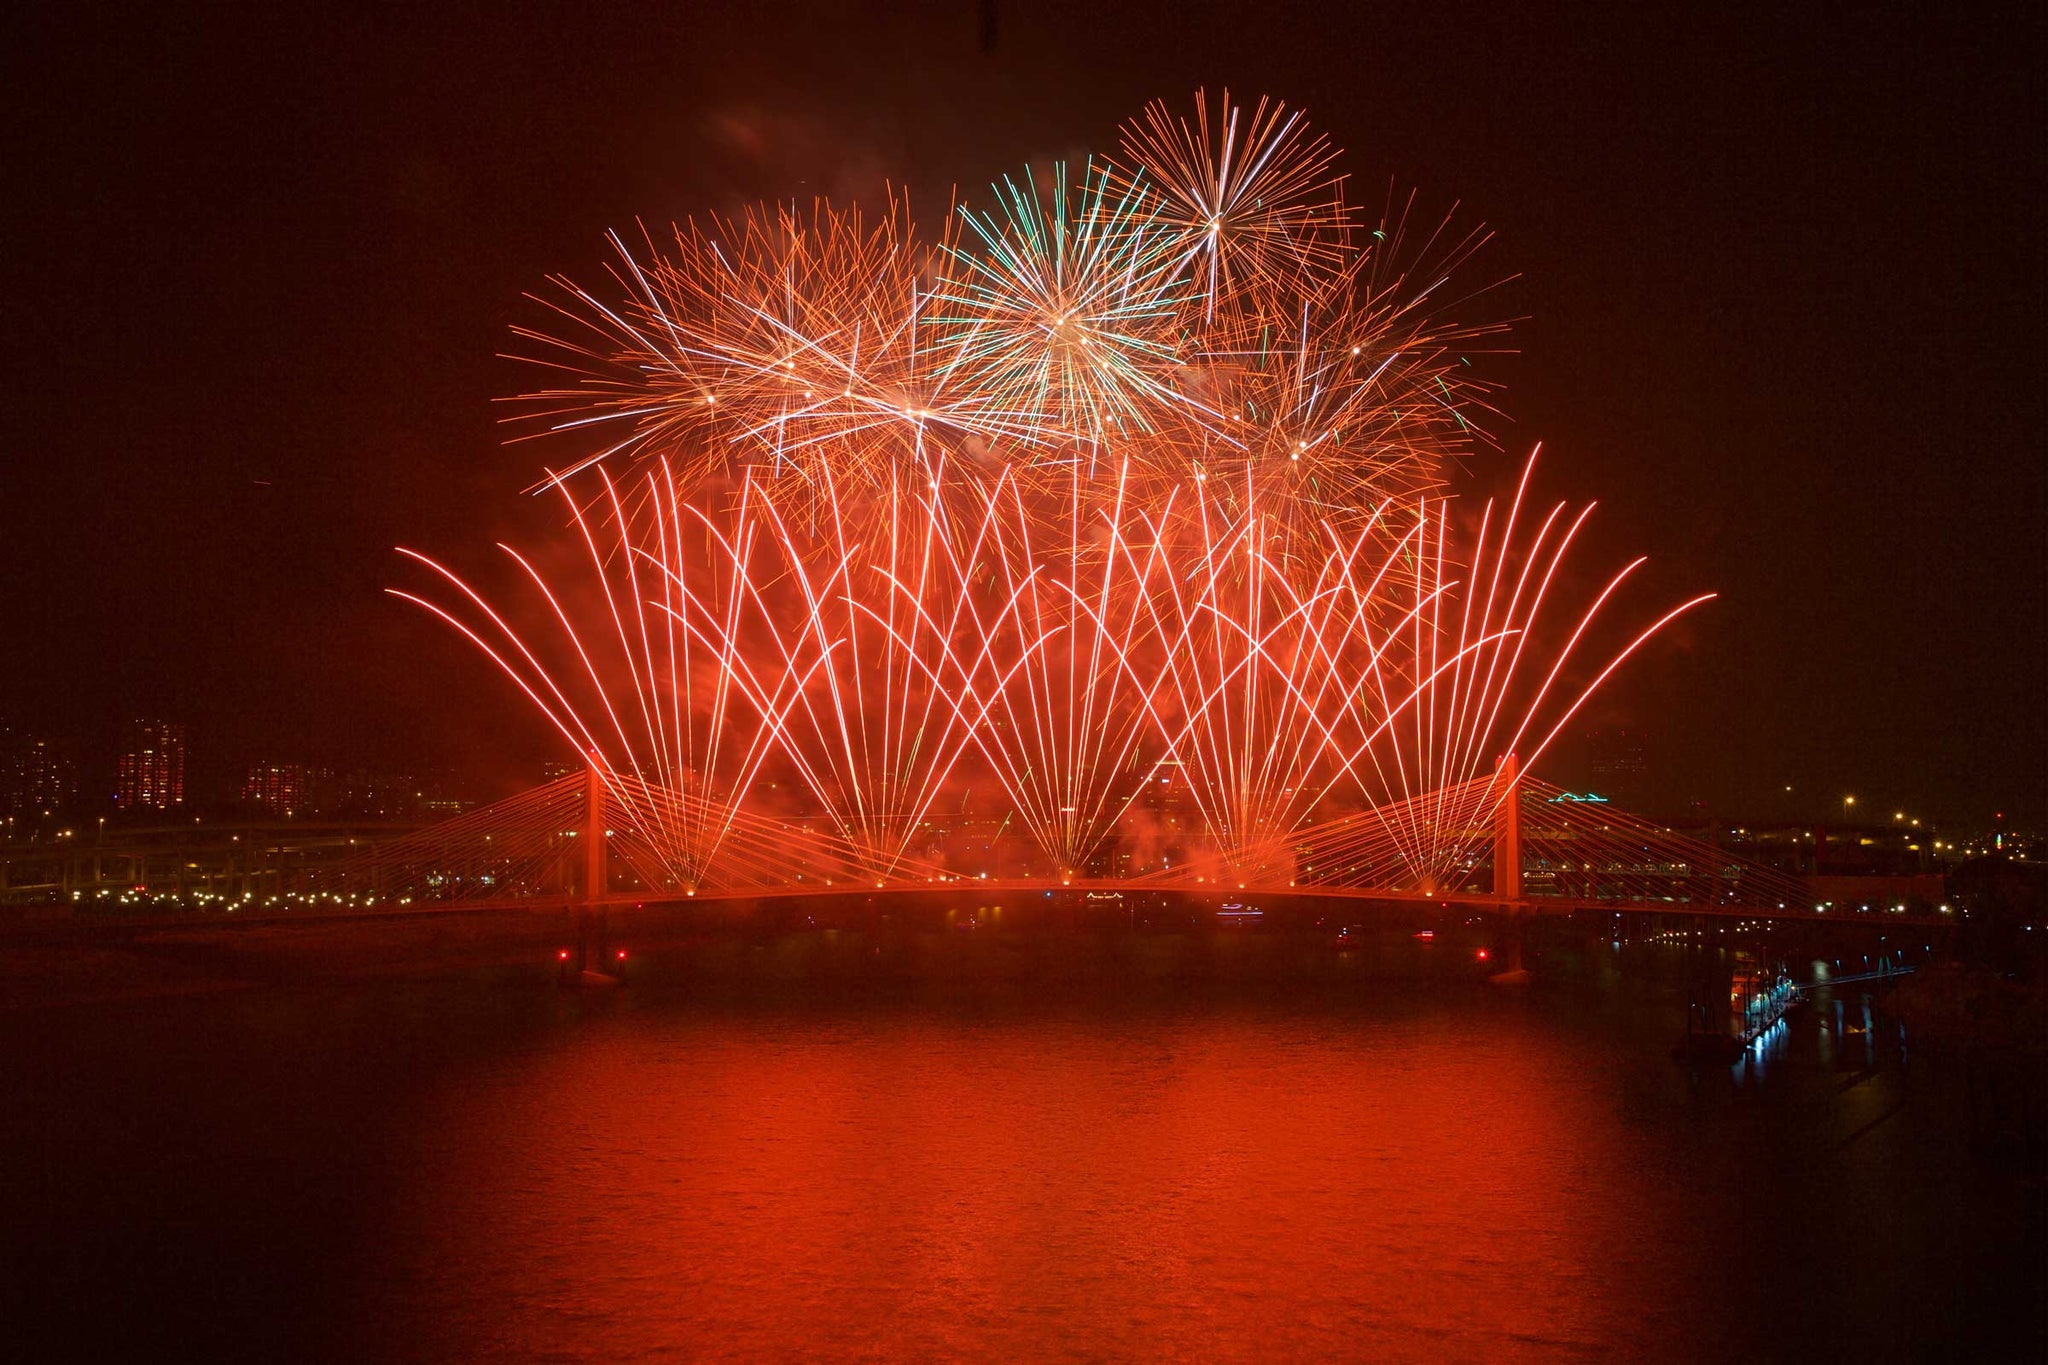 Trimet launched fireworks off the new Tilikum Crossing Bridge to cap their MAX Orange line picnic at the Zidell Yards next to the Willamette River on Saturday, Aug. 22, 2015. -- Randy L. Rasmussen/The Oregonian/OregonLive